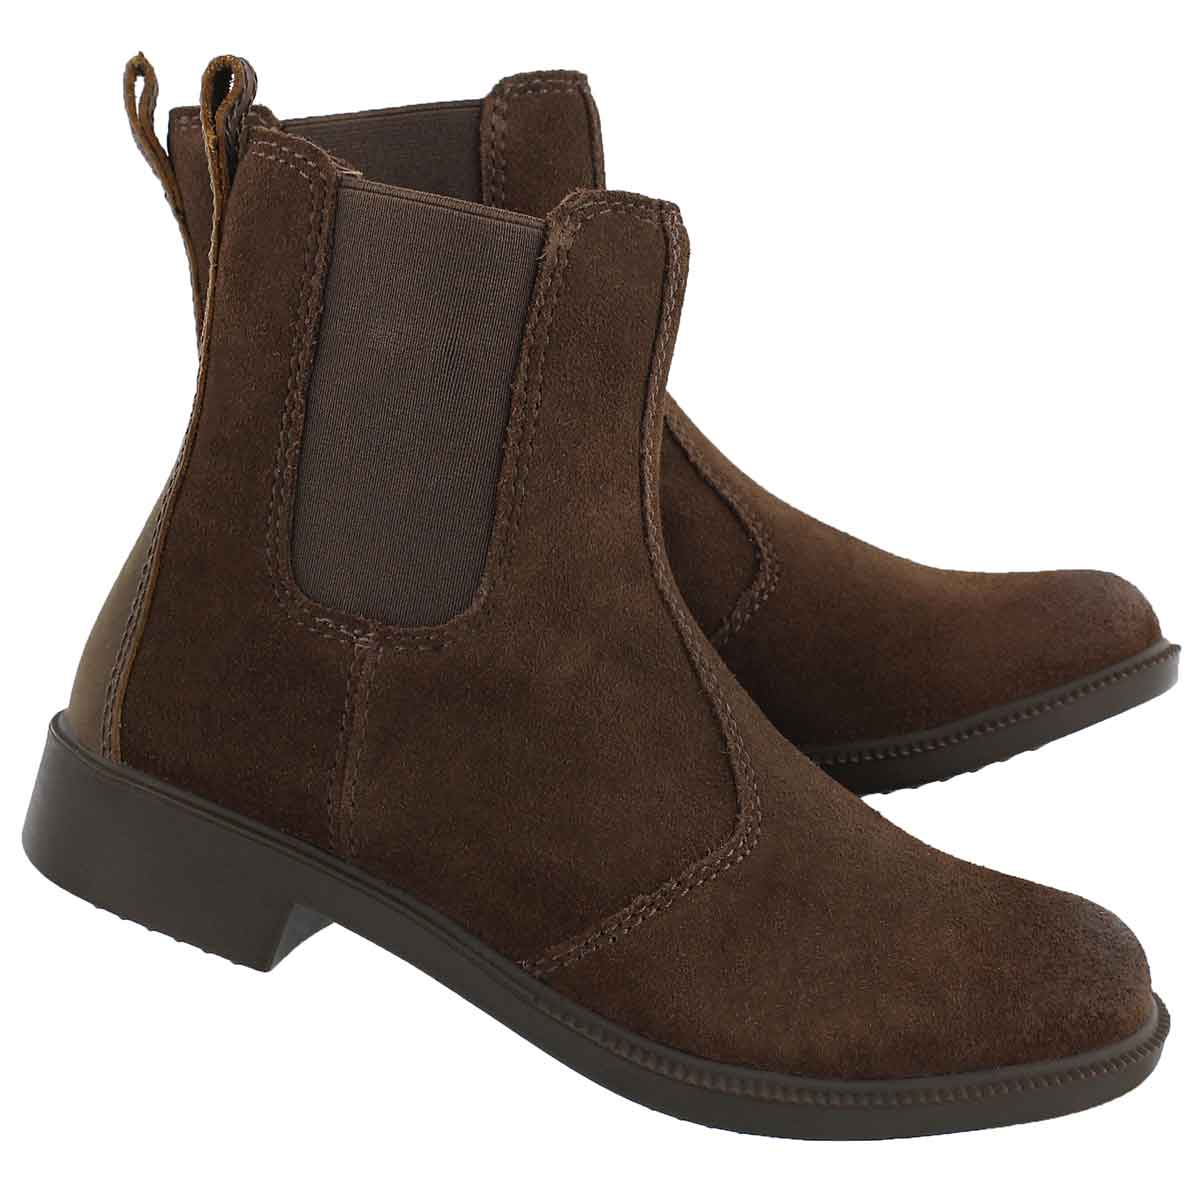 Lds Bria gold wtpf chelsea boot